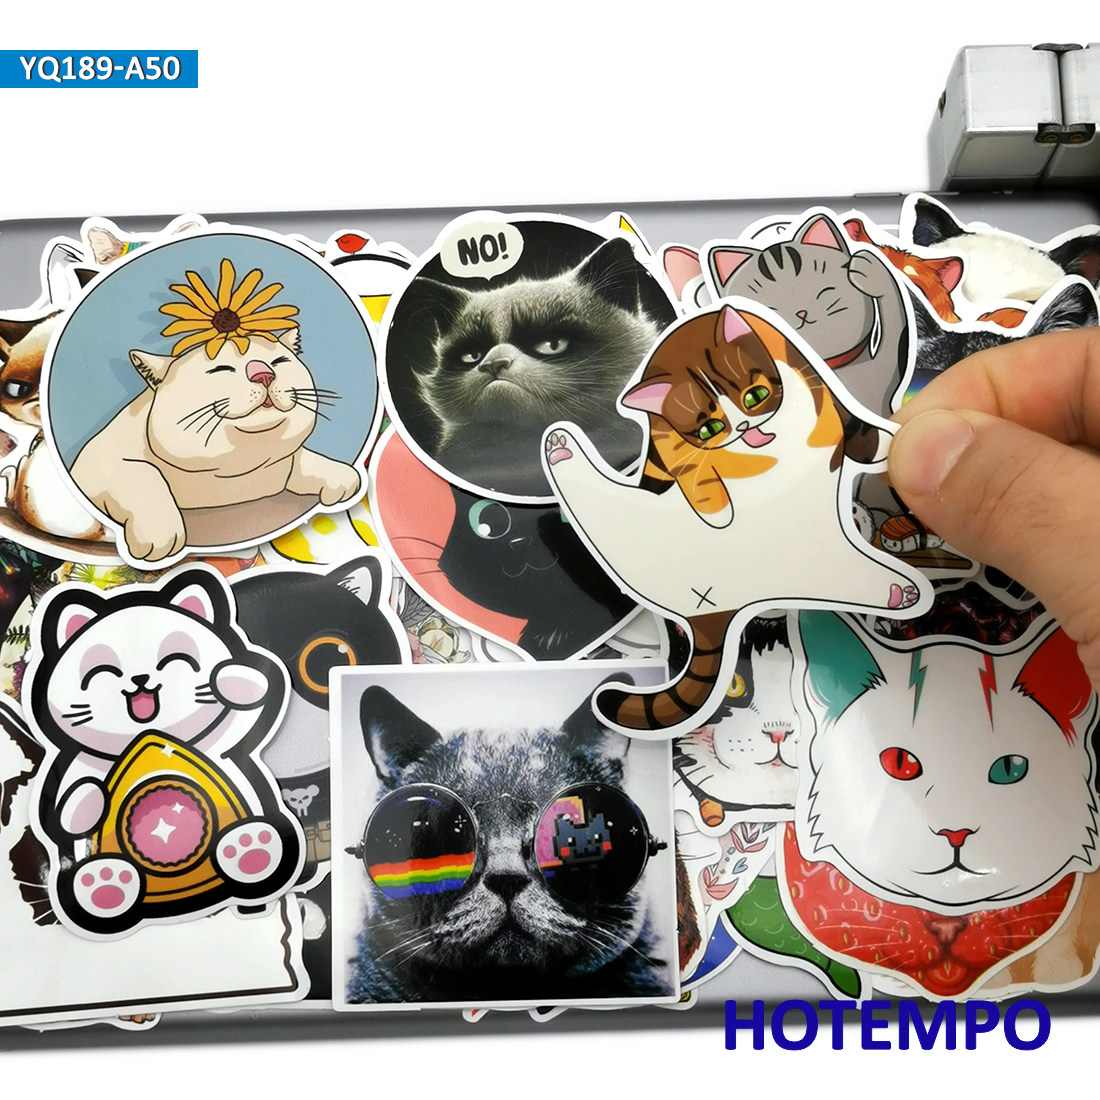 50pcs Cute Pets Kitten Puppy Anime Cat Dog Style Stickers Toys For Kid Mobile Phone Laptop Luggage Case Skateboard Decal Sticker